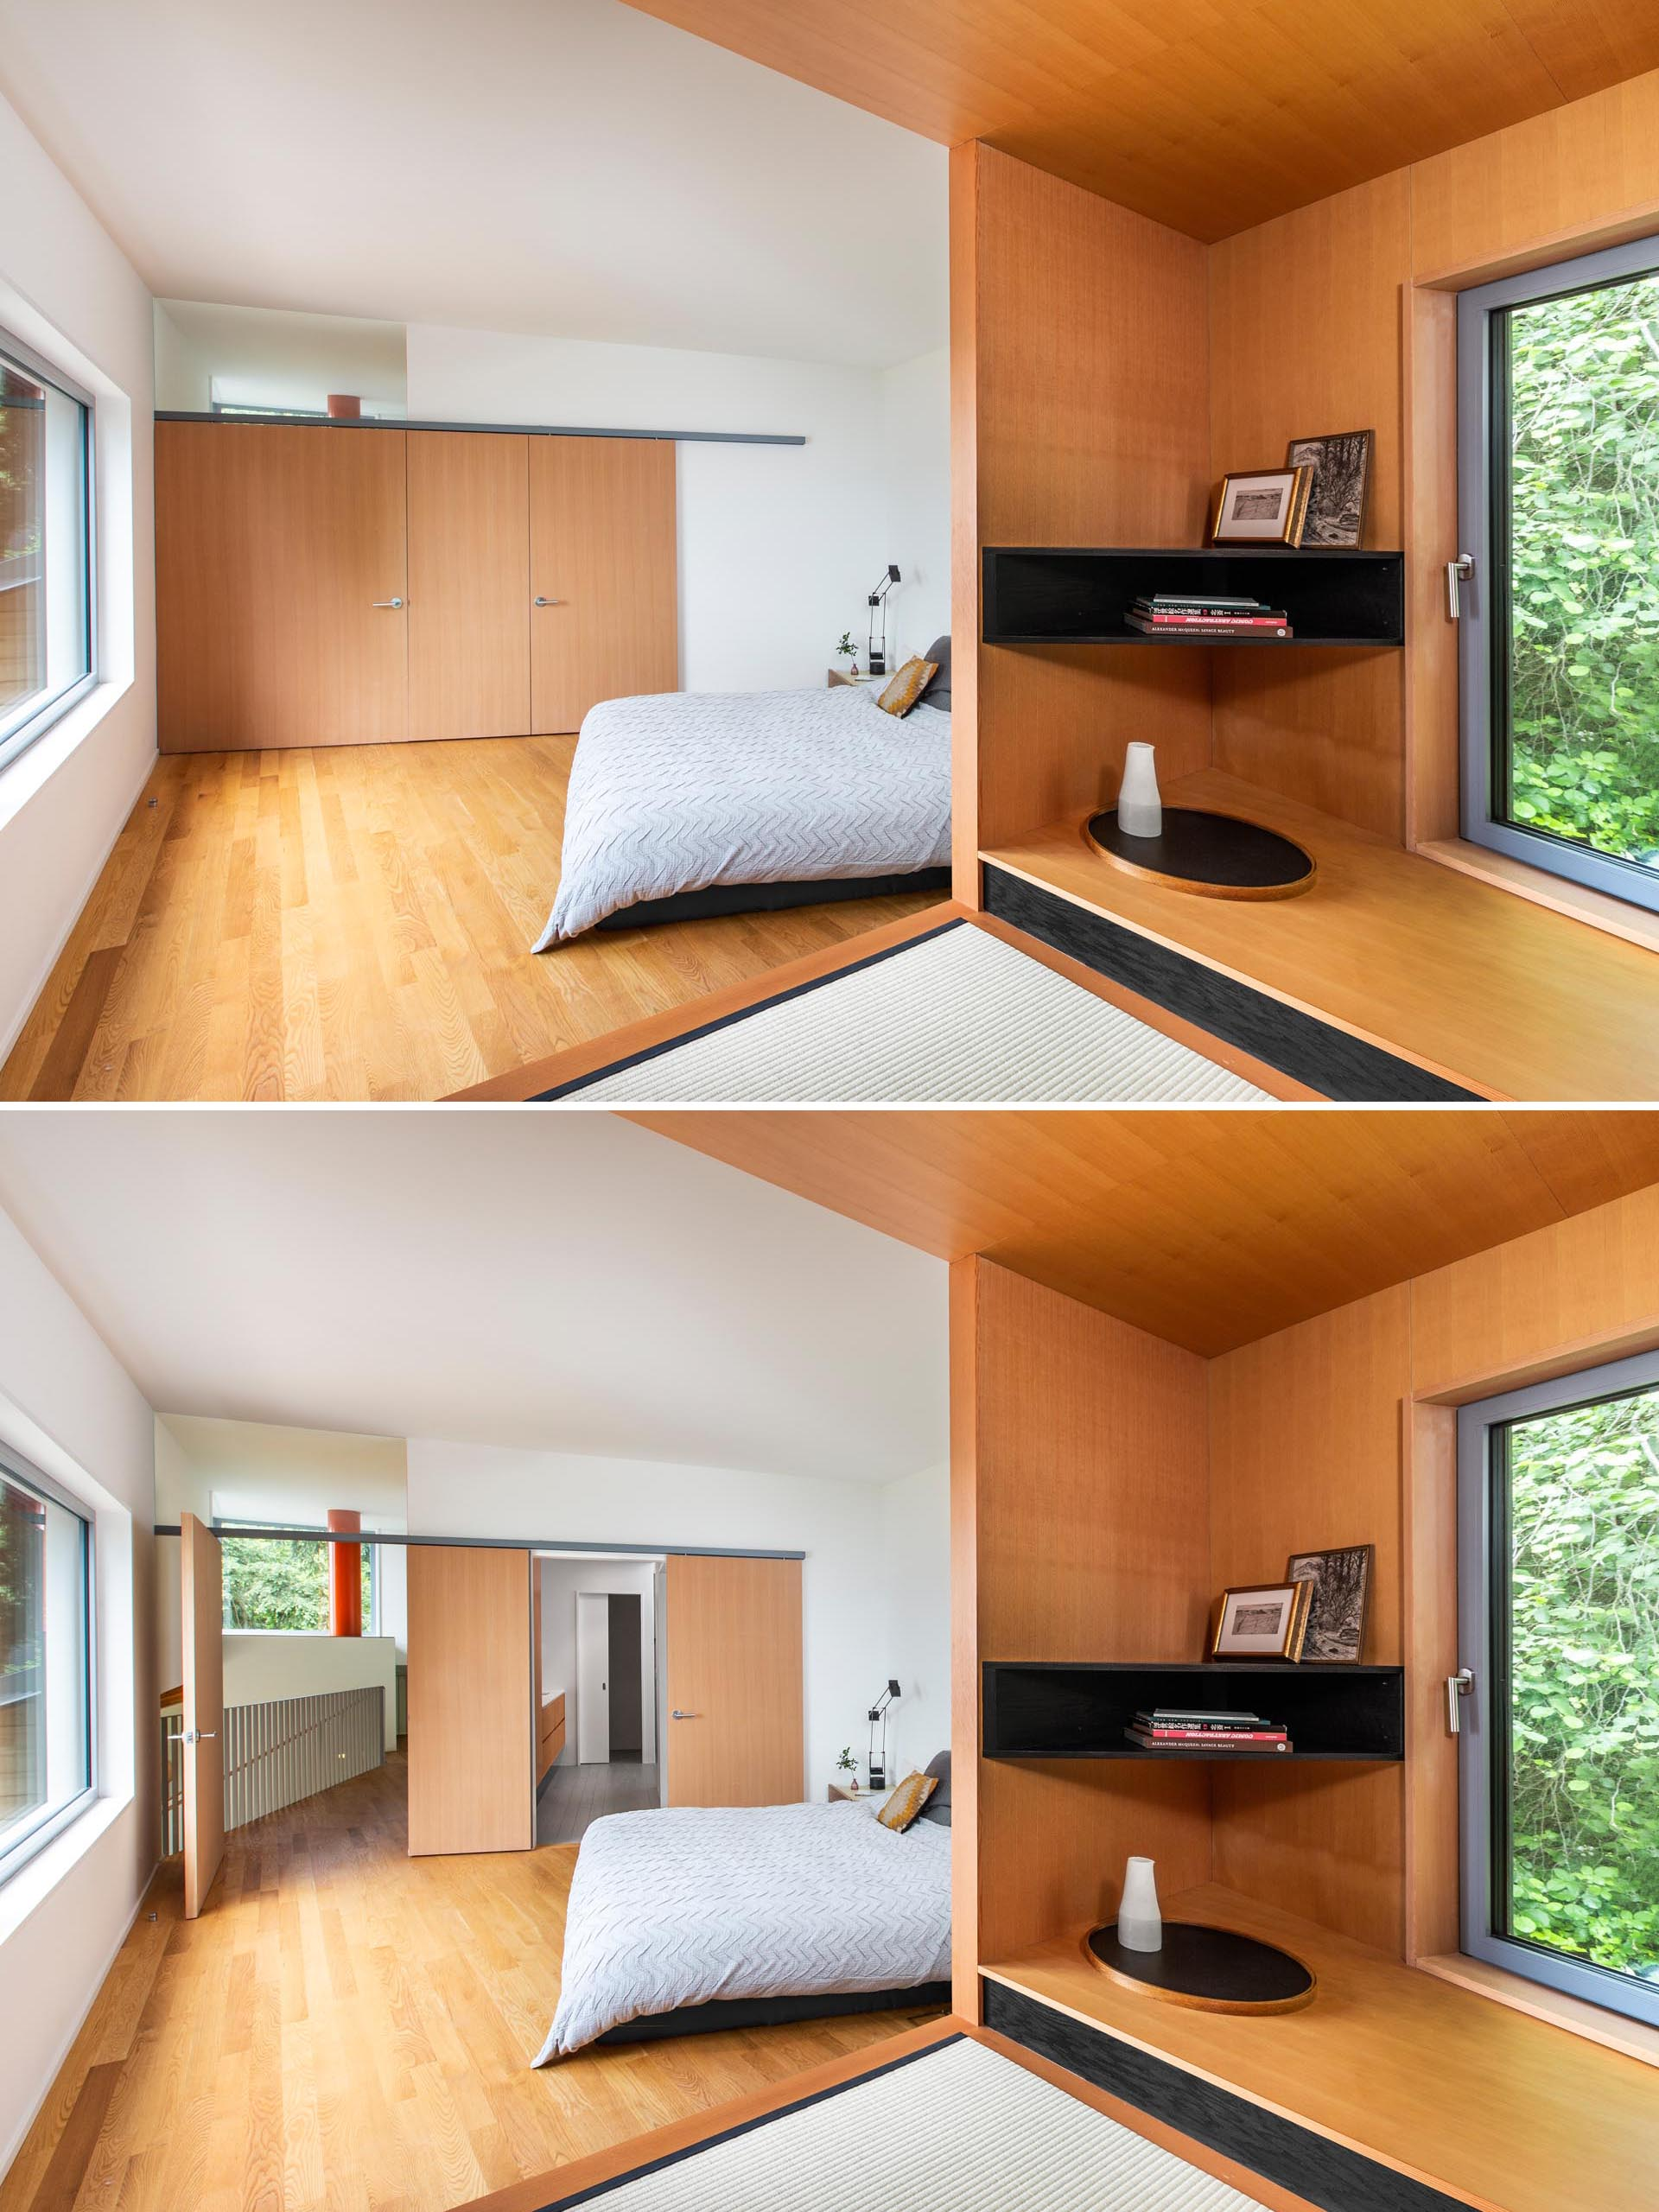 A pivoting bedroom door was made possible by the installation of a custom track that also enables a sliding bathroom door. Both the doors and a panel are made from fir.